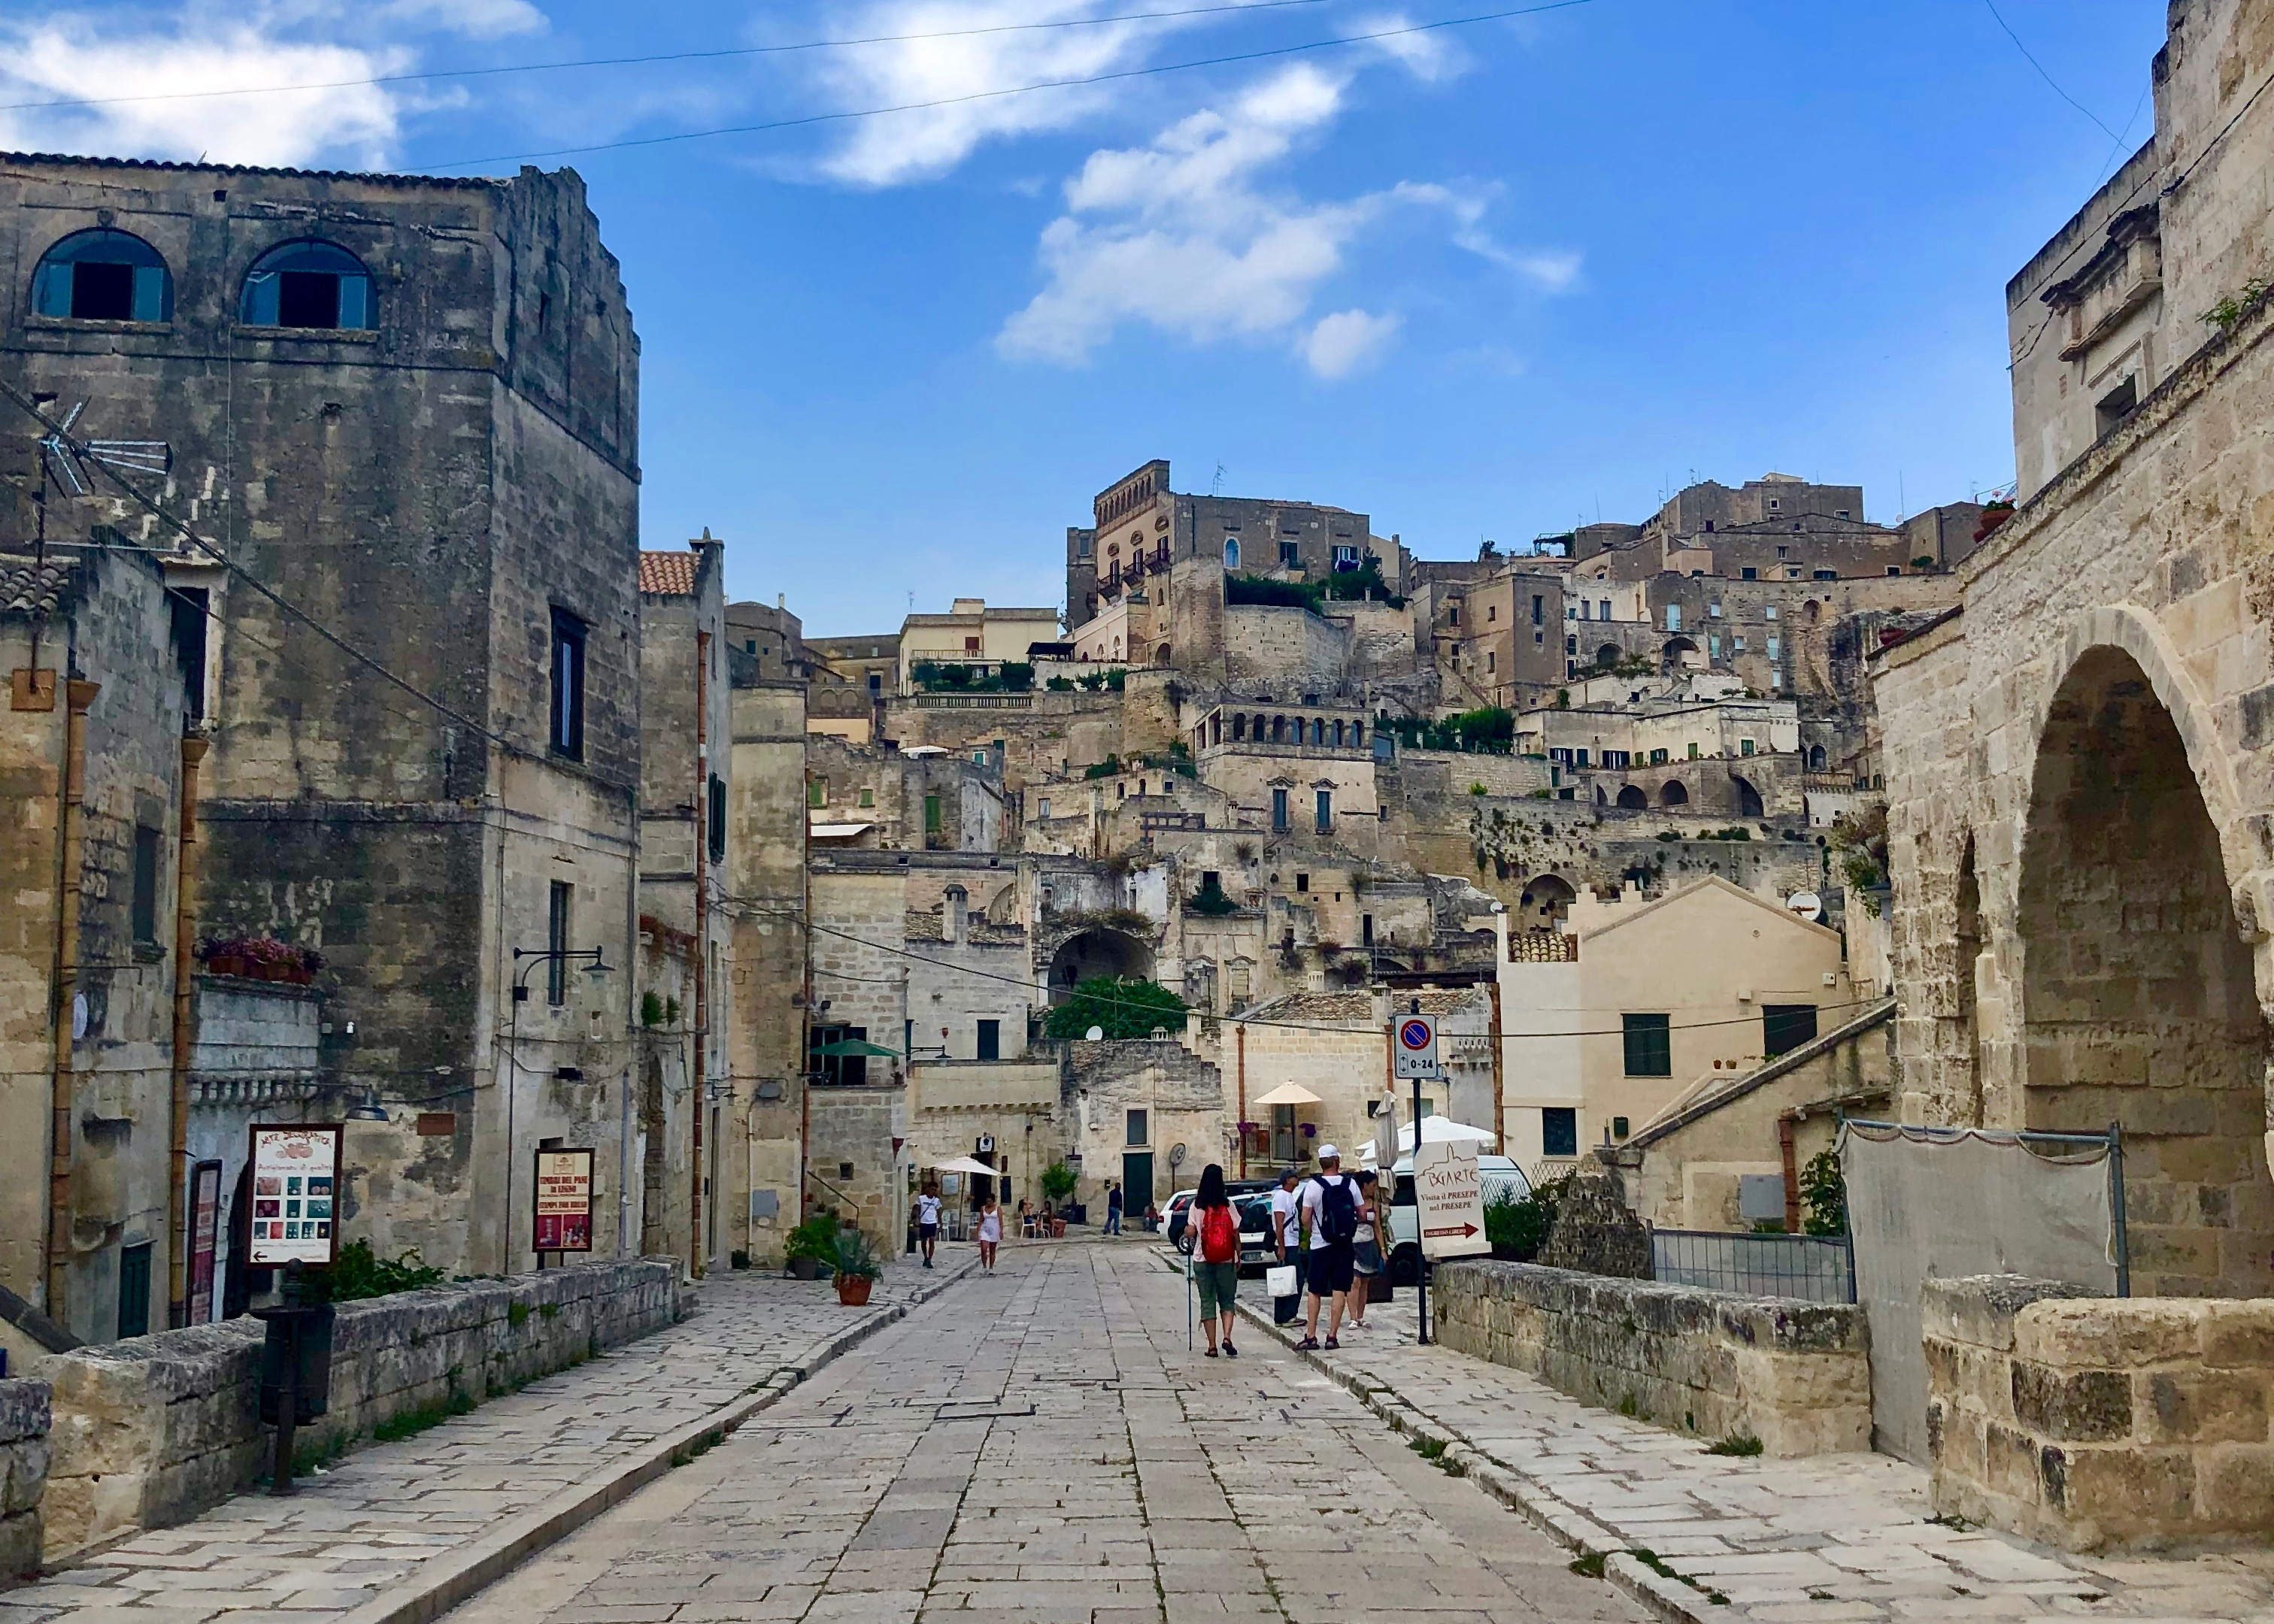 Matera Old Town